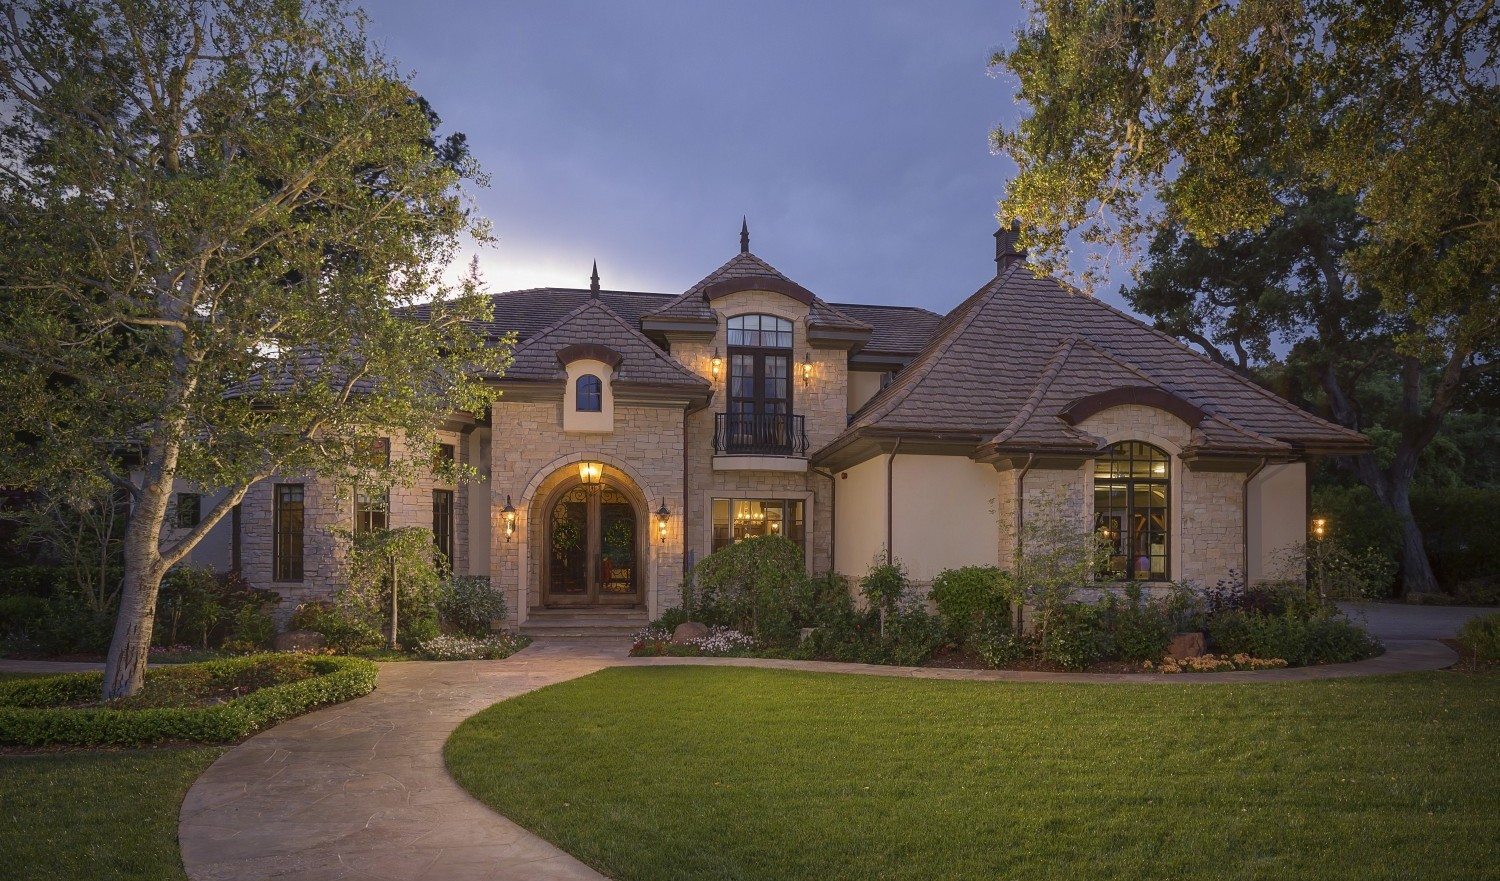 Extraordinary Home Of The Week: Private Lindenwood Estate